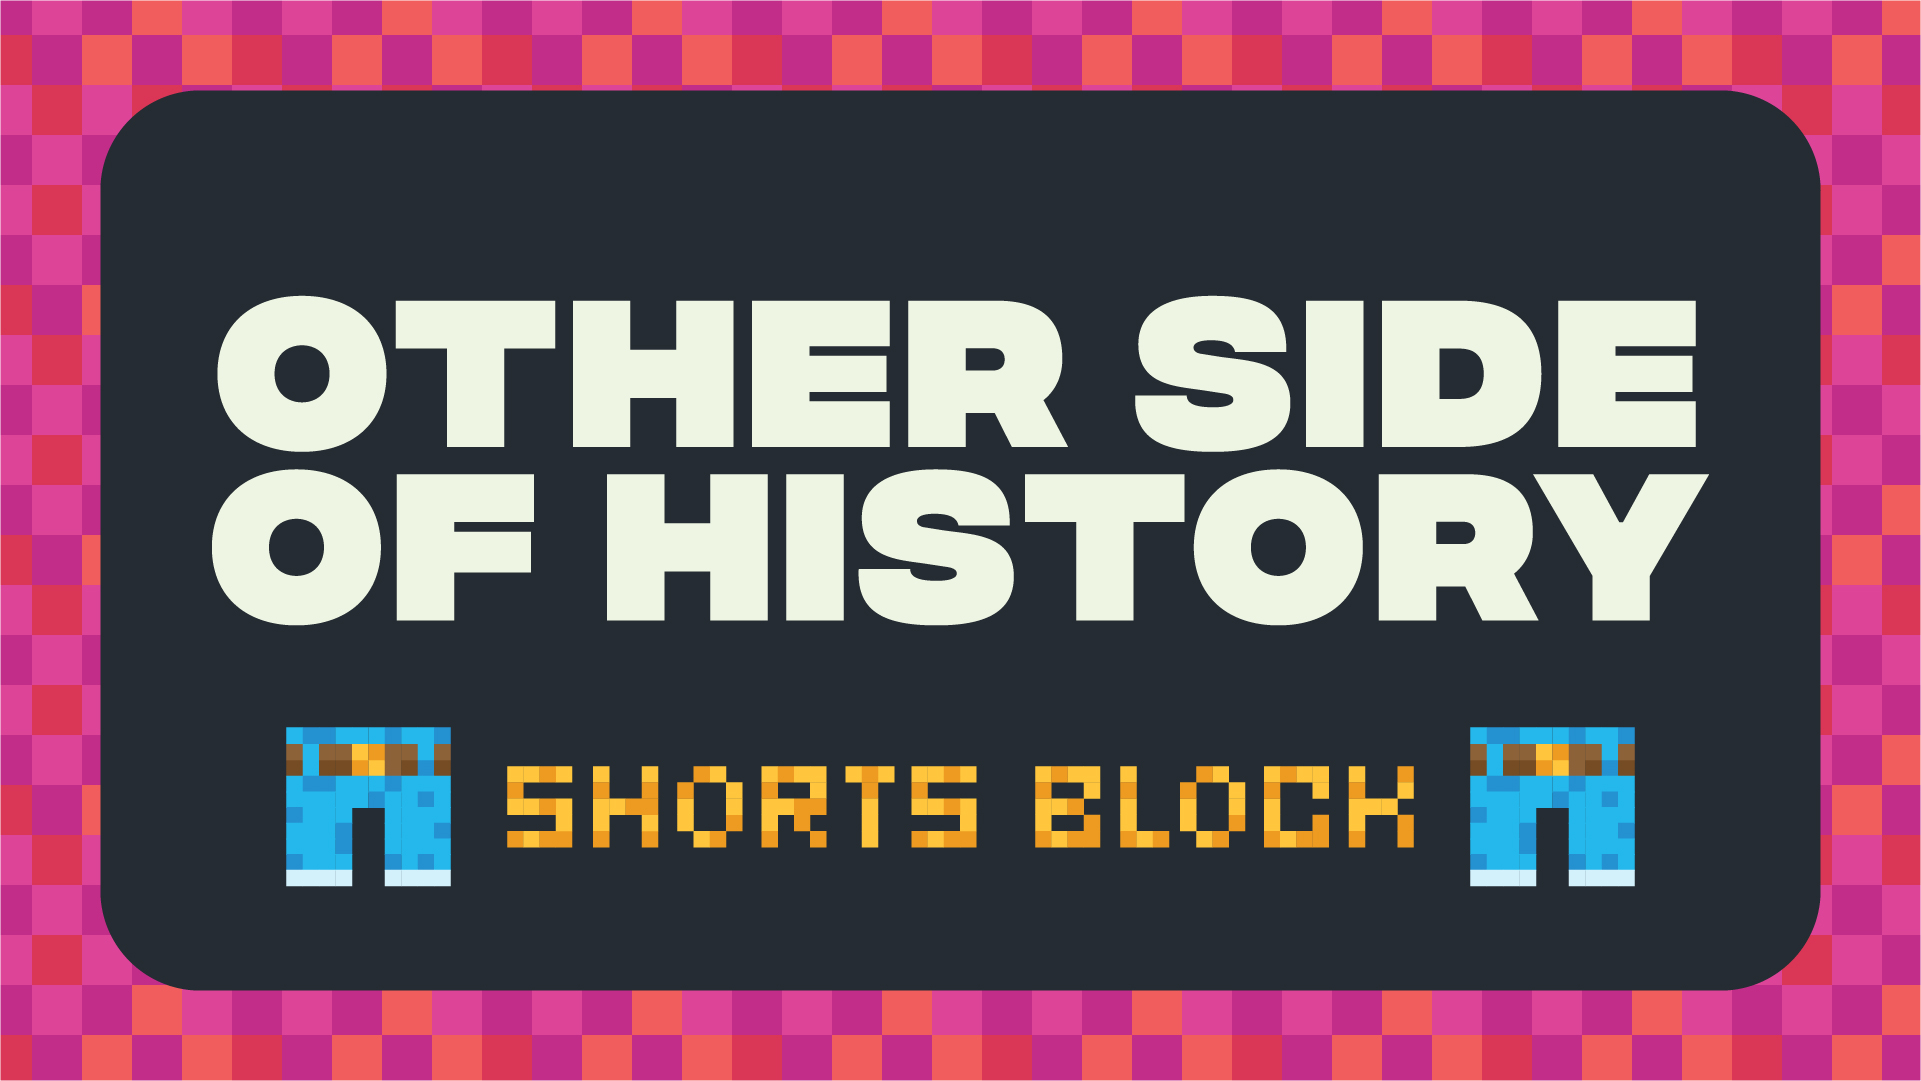 The Other Side of History Shorts Block